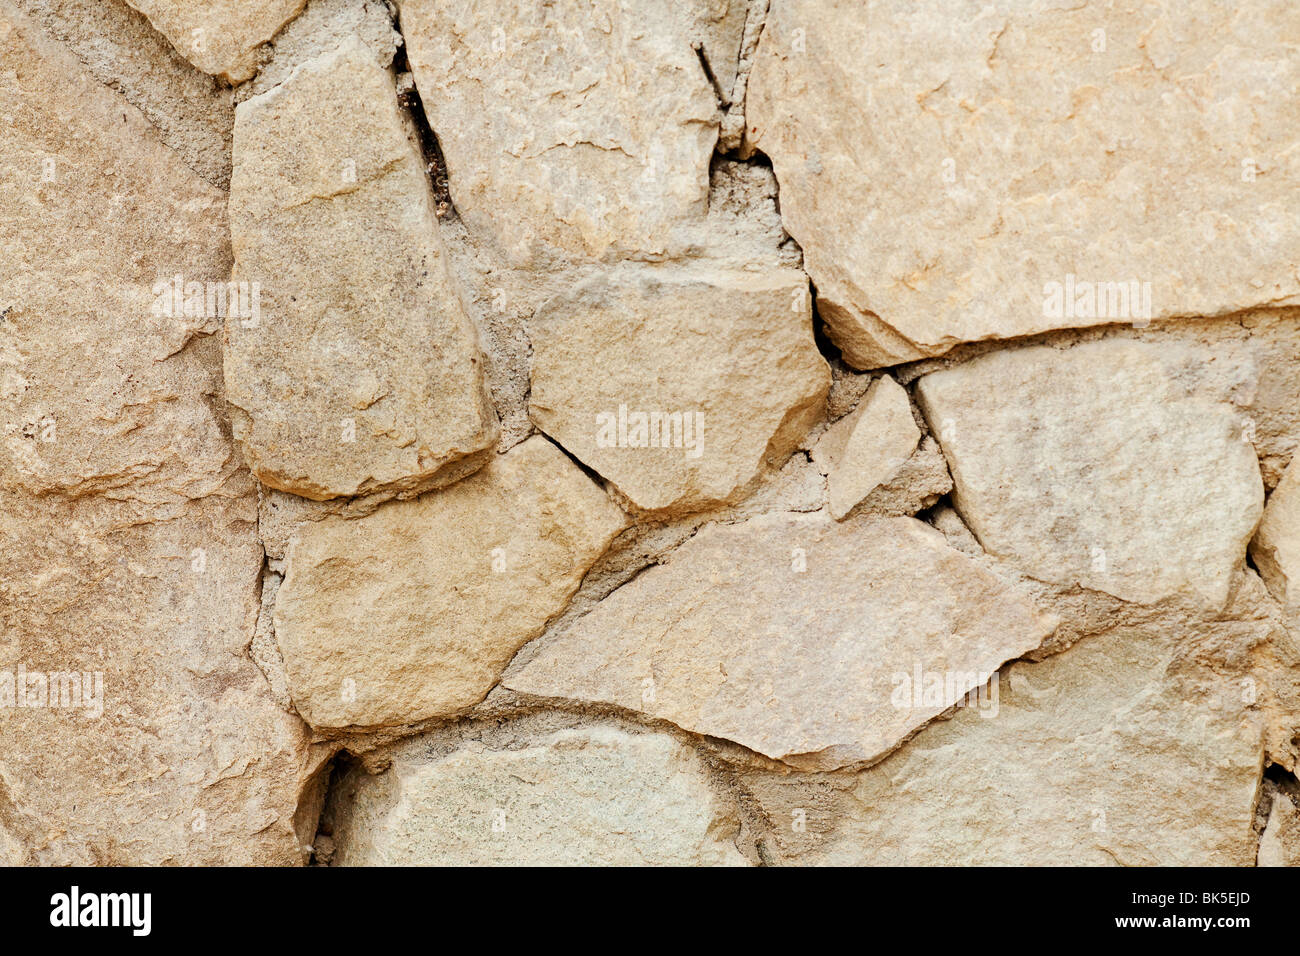 Stone Wall background tourné avec un objectif macro Photo Stock